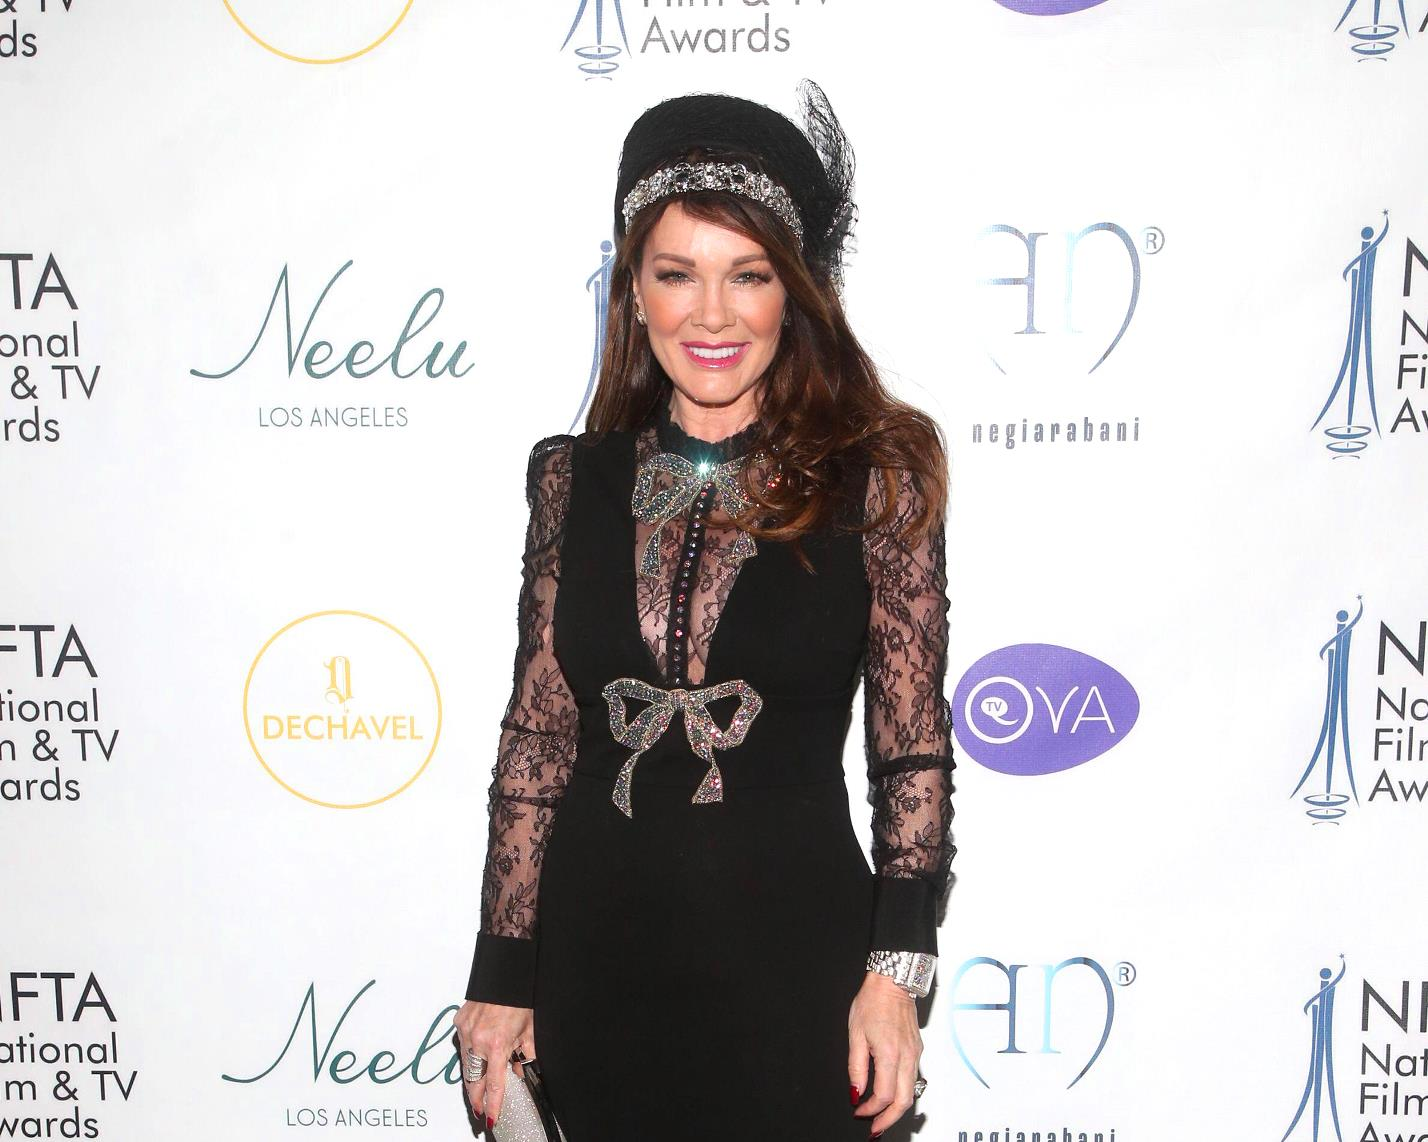 Lisa Vanderpump Reveals Which RHOBH Co-Star Gave Her the Worst Gift She's Gotten, Plus Learn Why She 'Hated' Filming the Show